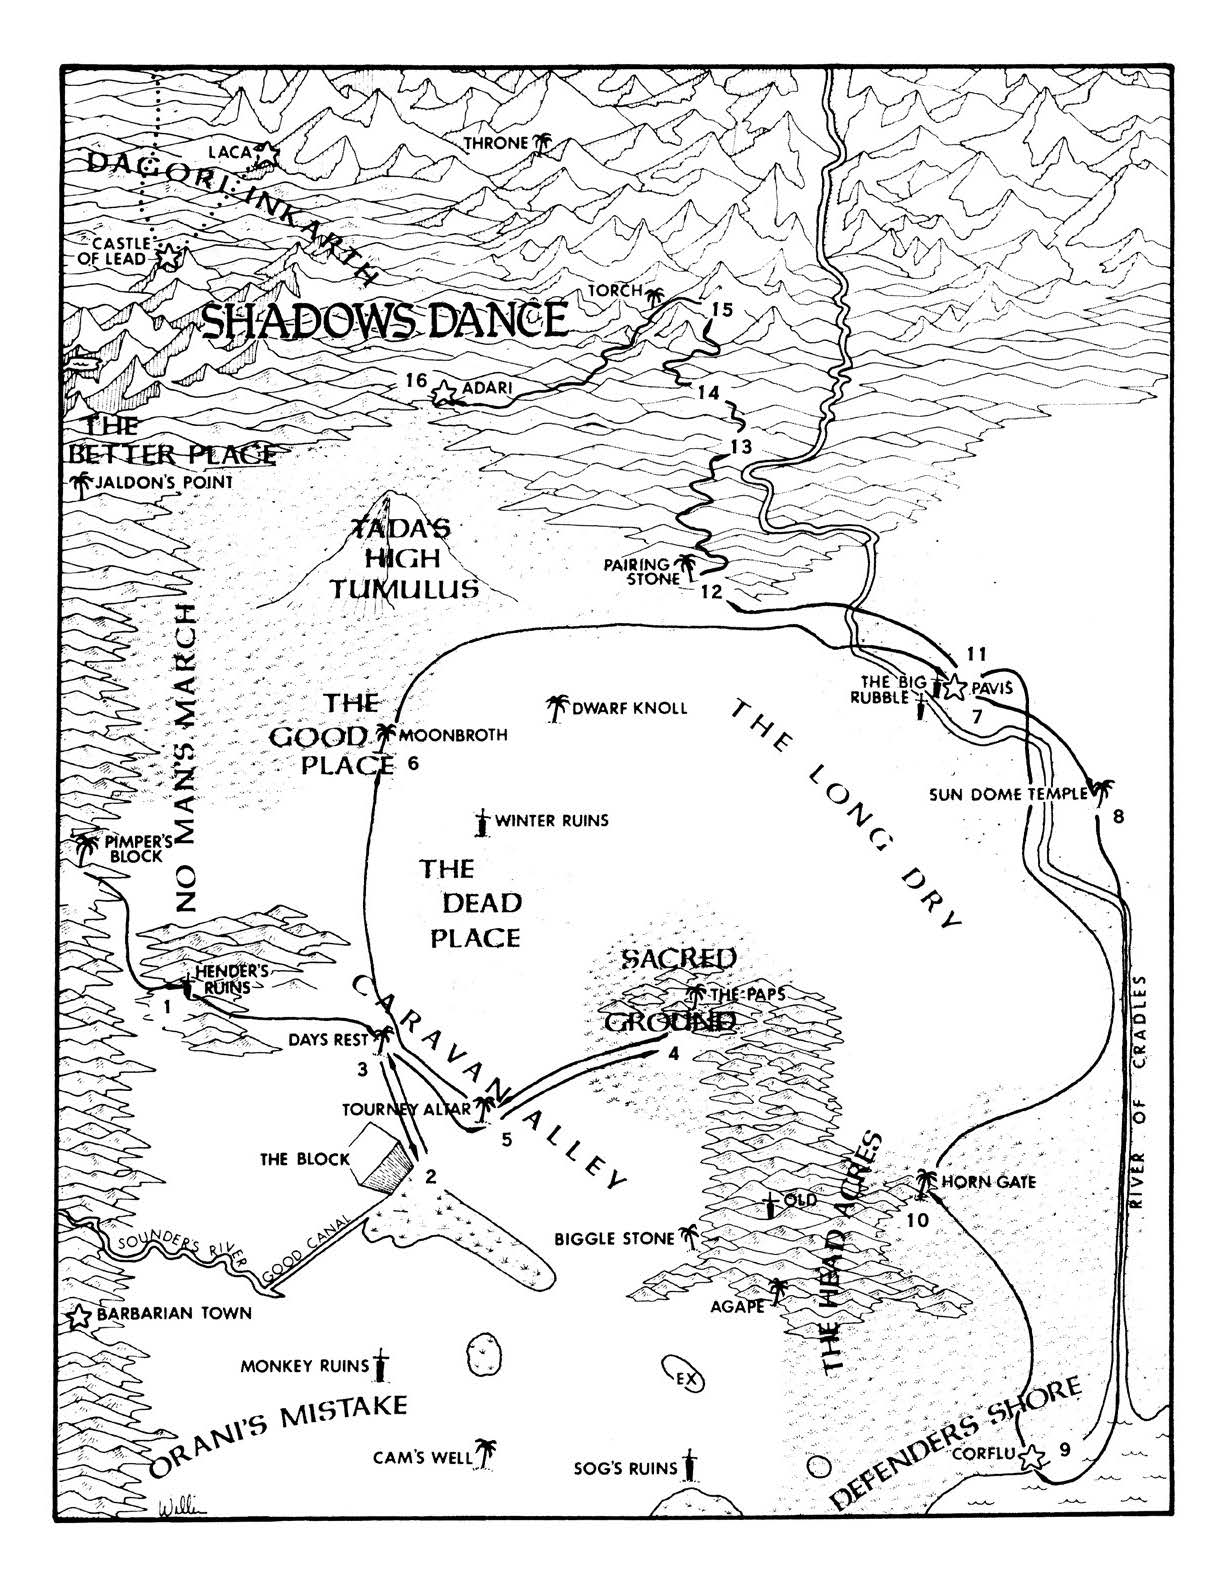 Map of prax by william church